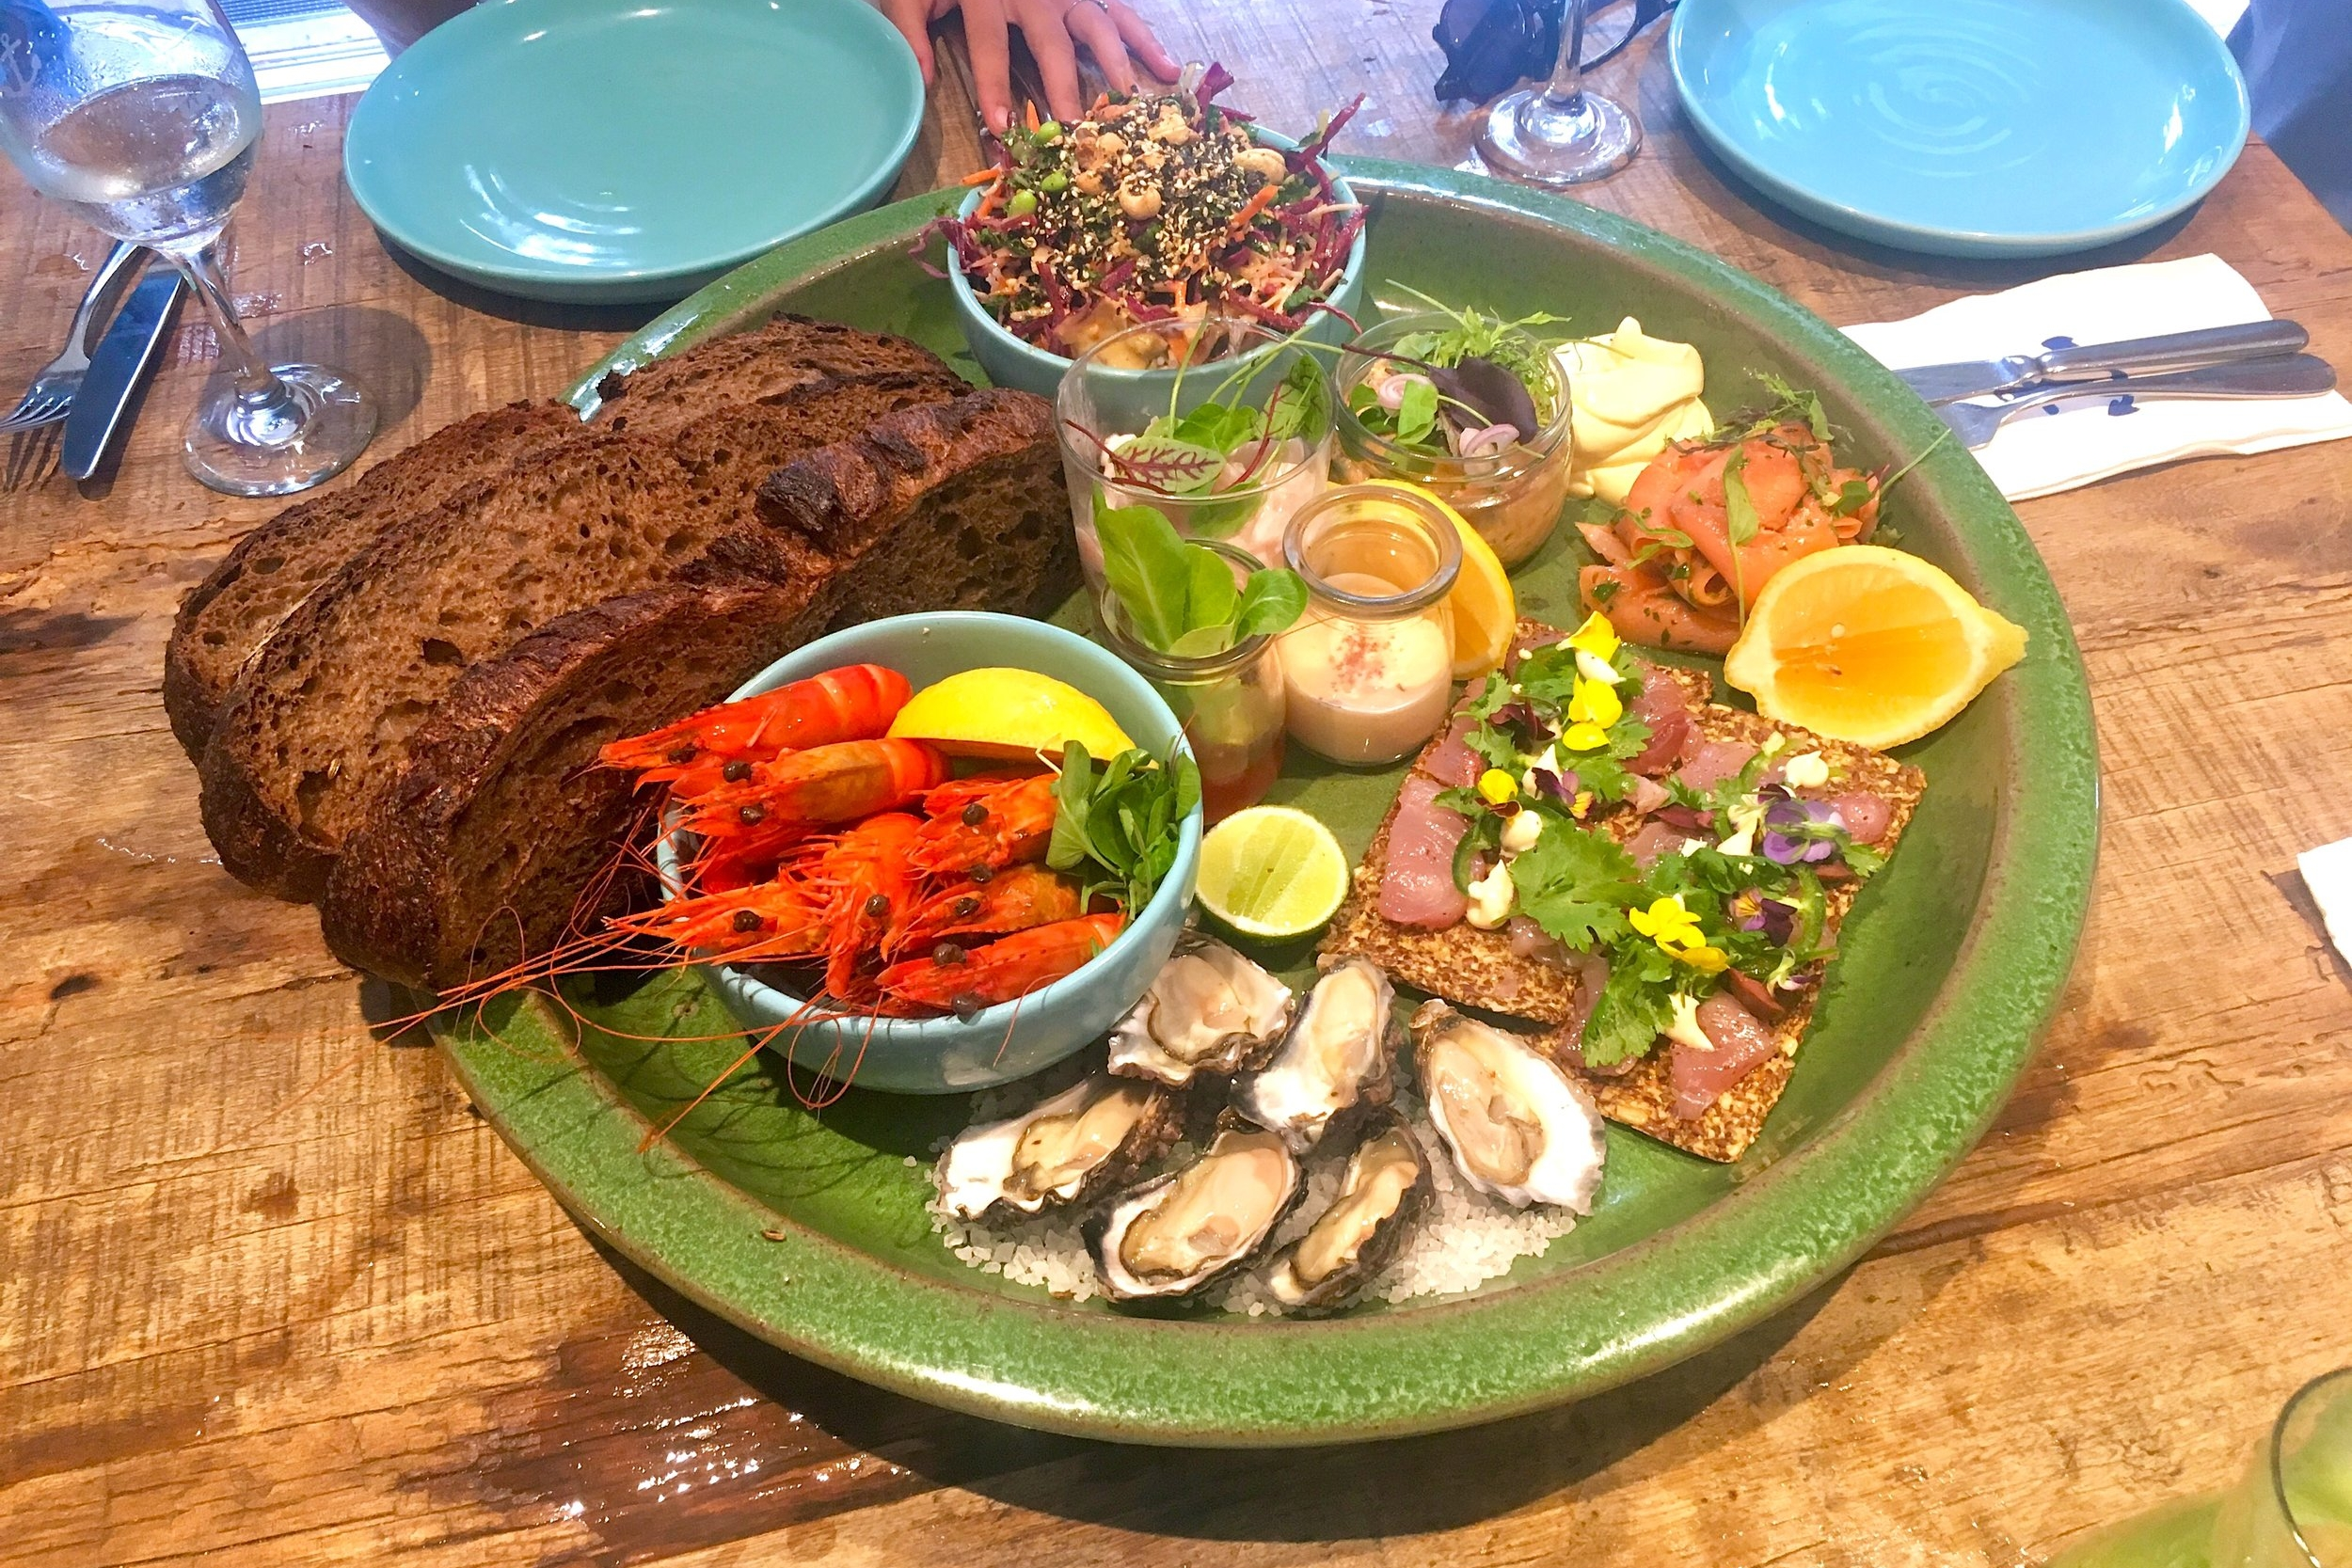 cold seafood platter // sydney rock oysters, tuna cracker, trout pate, smoked trout, QLD tiger prawns, kingfish ceviche, served with Boathouse salad + sourdough